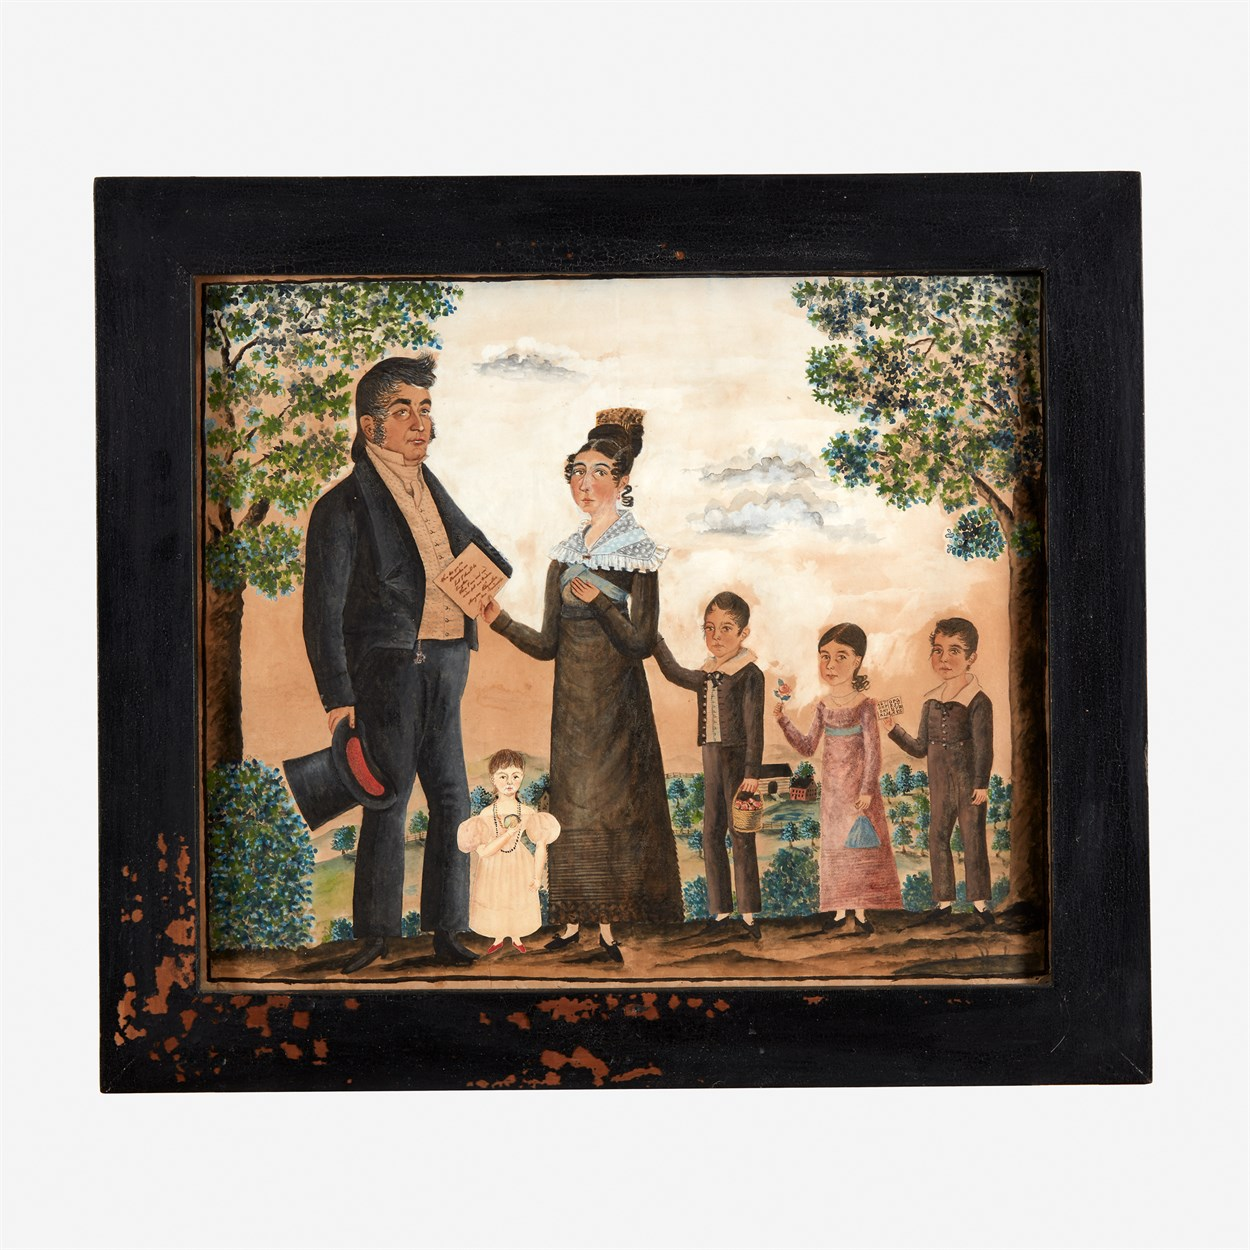 Lot 46 - Attributed to Jacob Maentel (1778-1863)